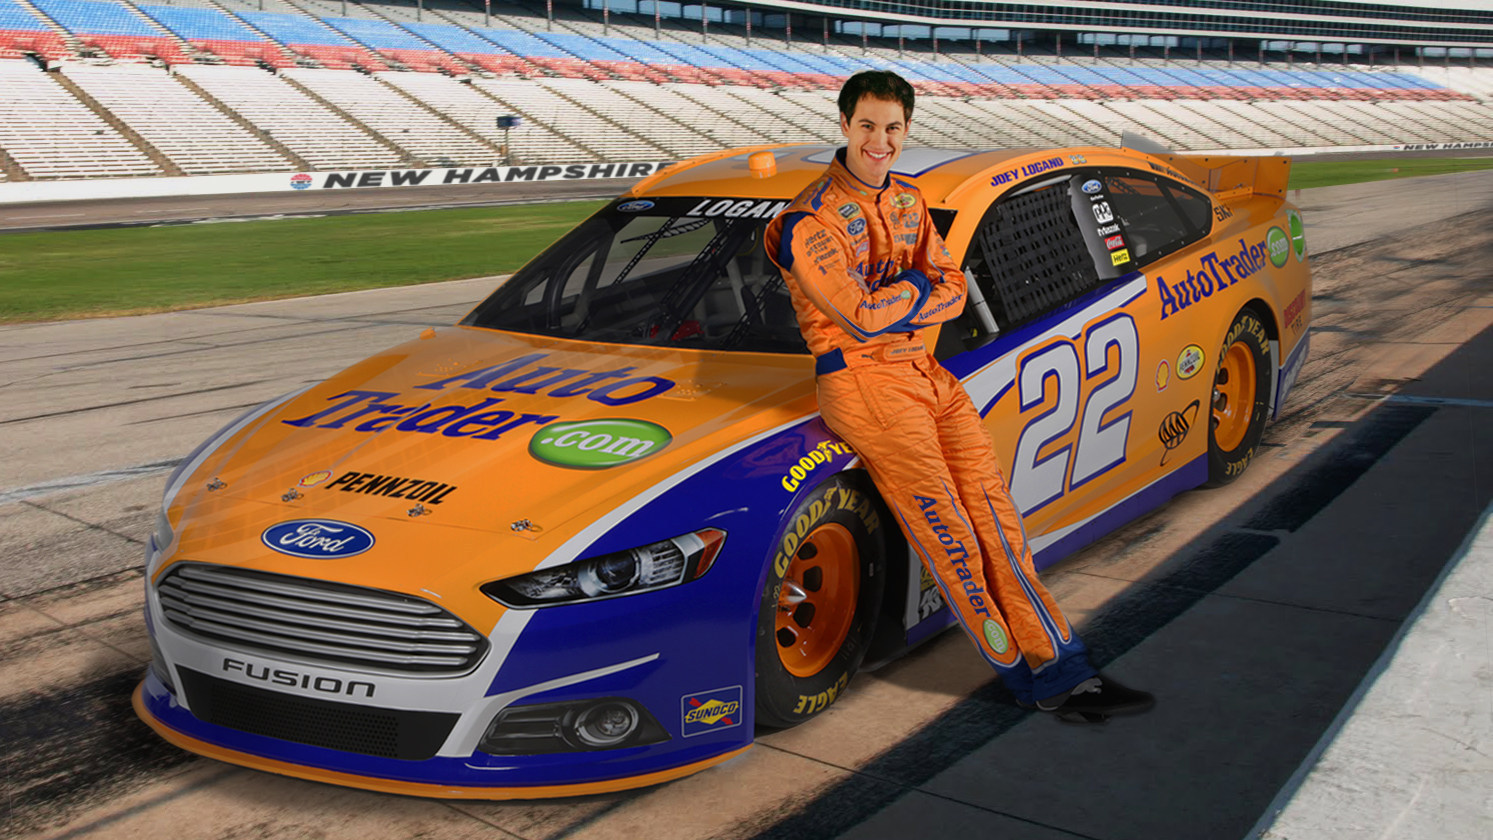 Autotrader Com Races Into New Hampshire As Primary Sponsor